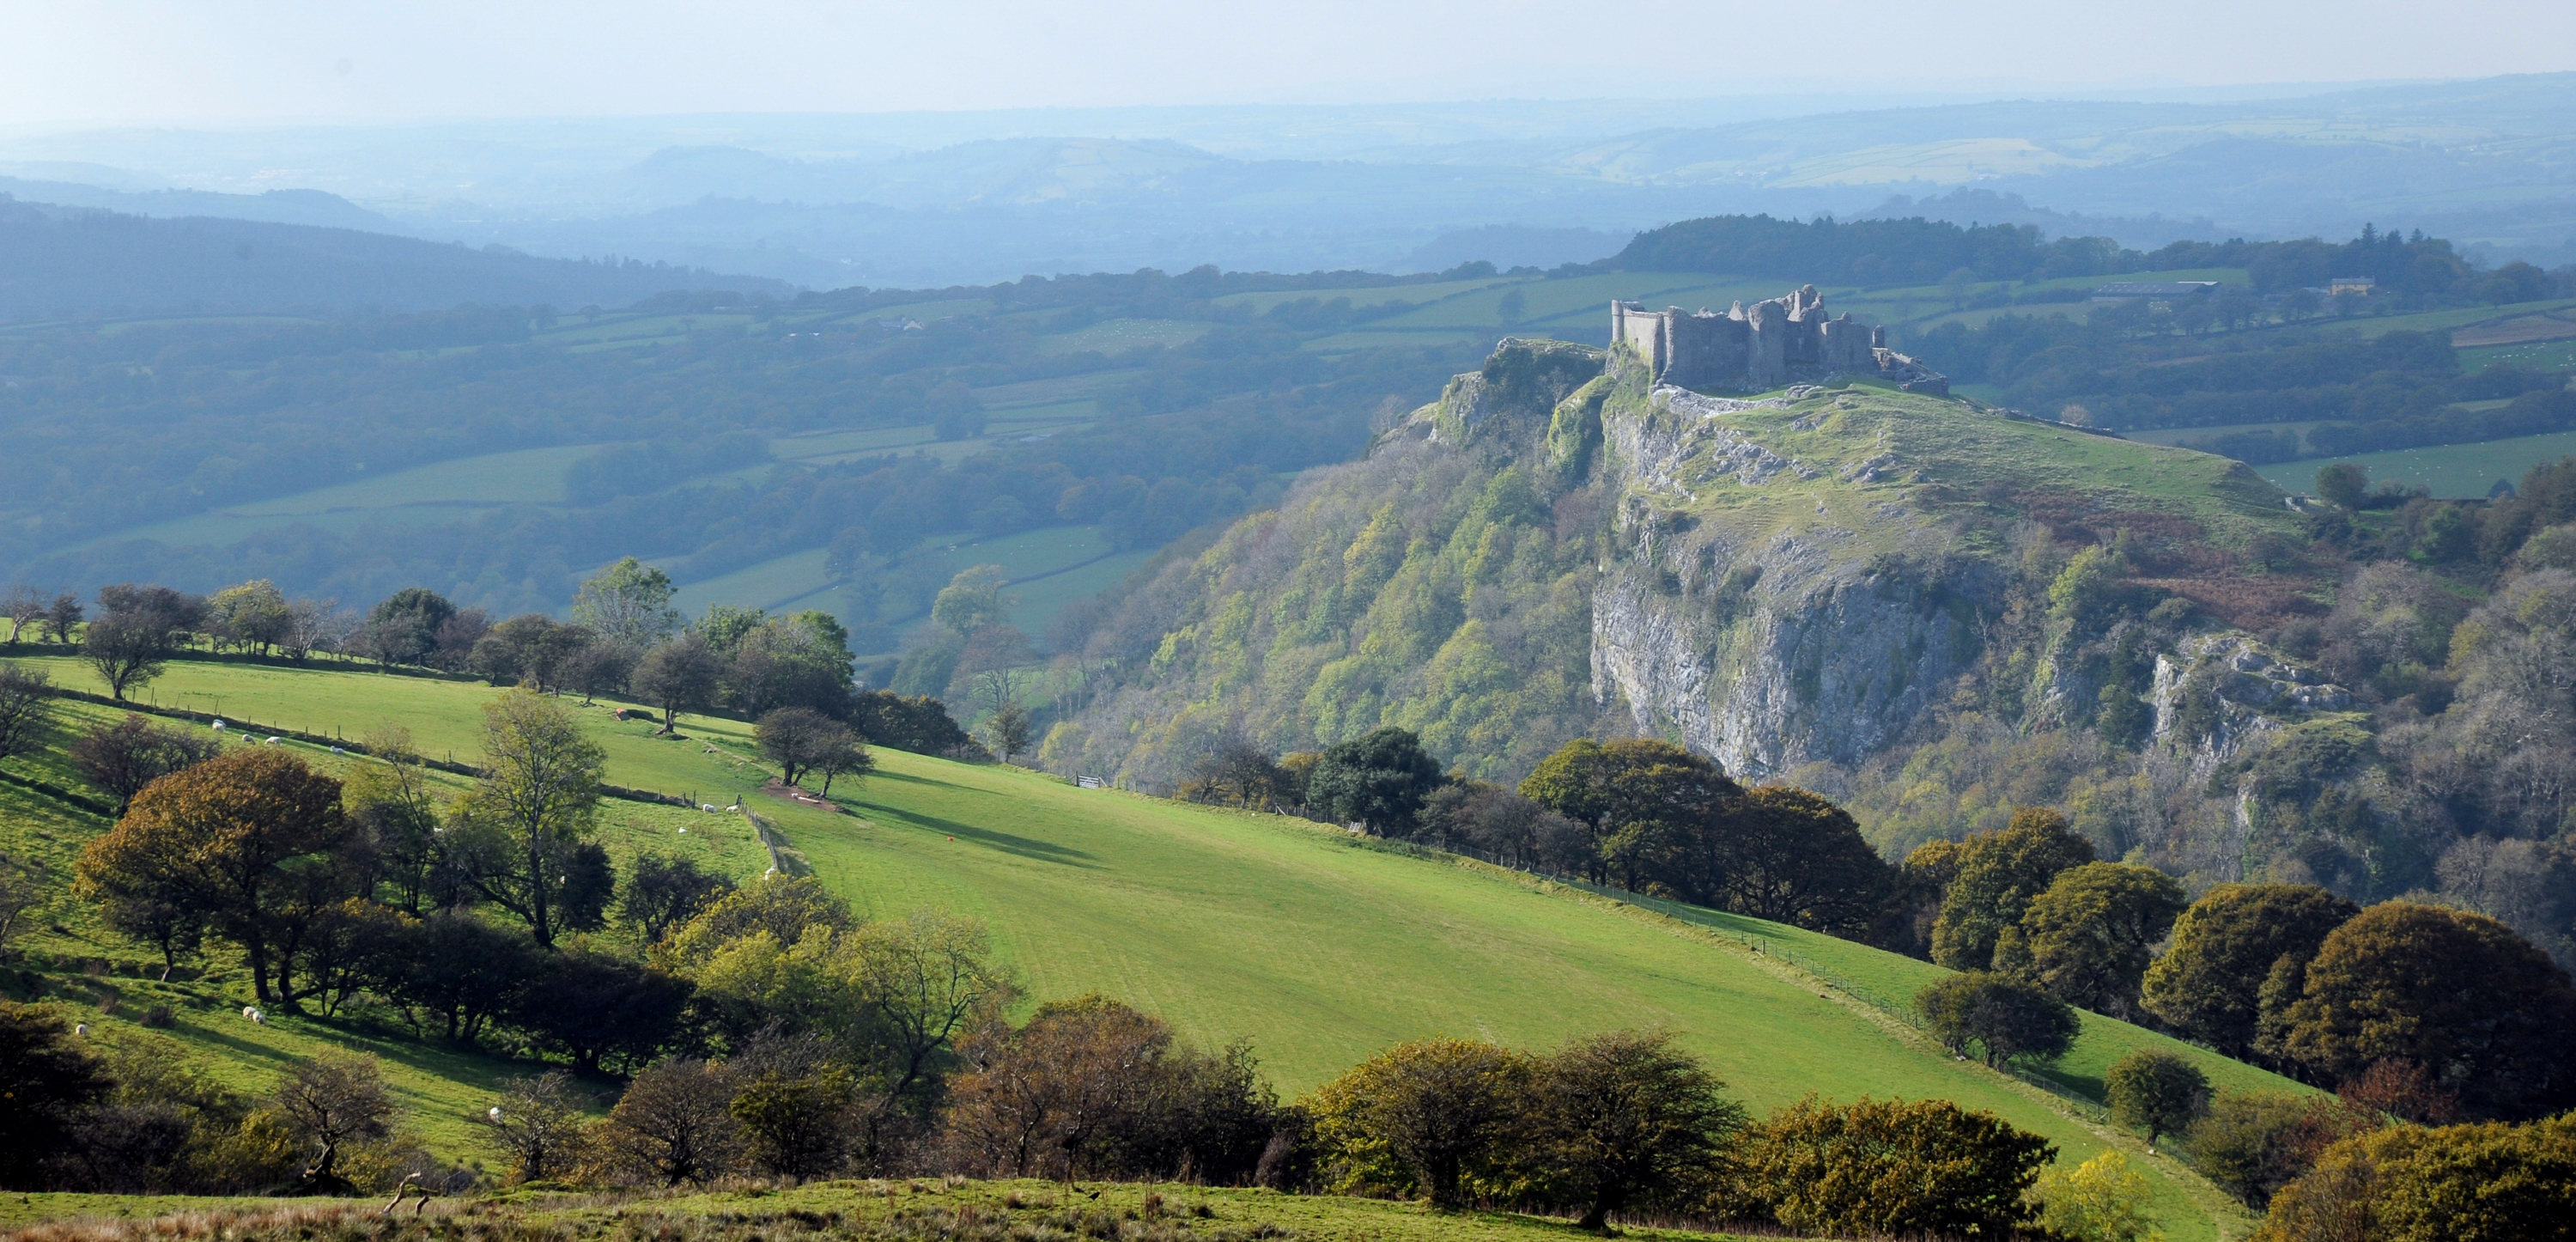 Commended 2018: Carreg Cennen Castle, by Ken Day, Wikimedia Commons CC BY-SA 4.0